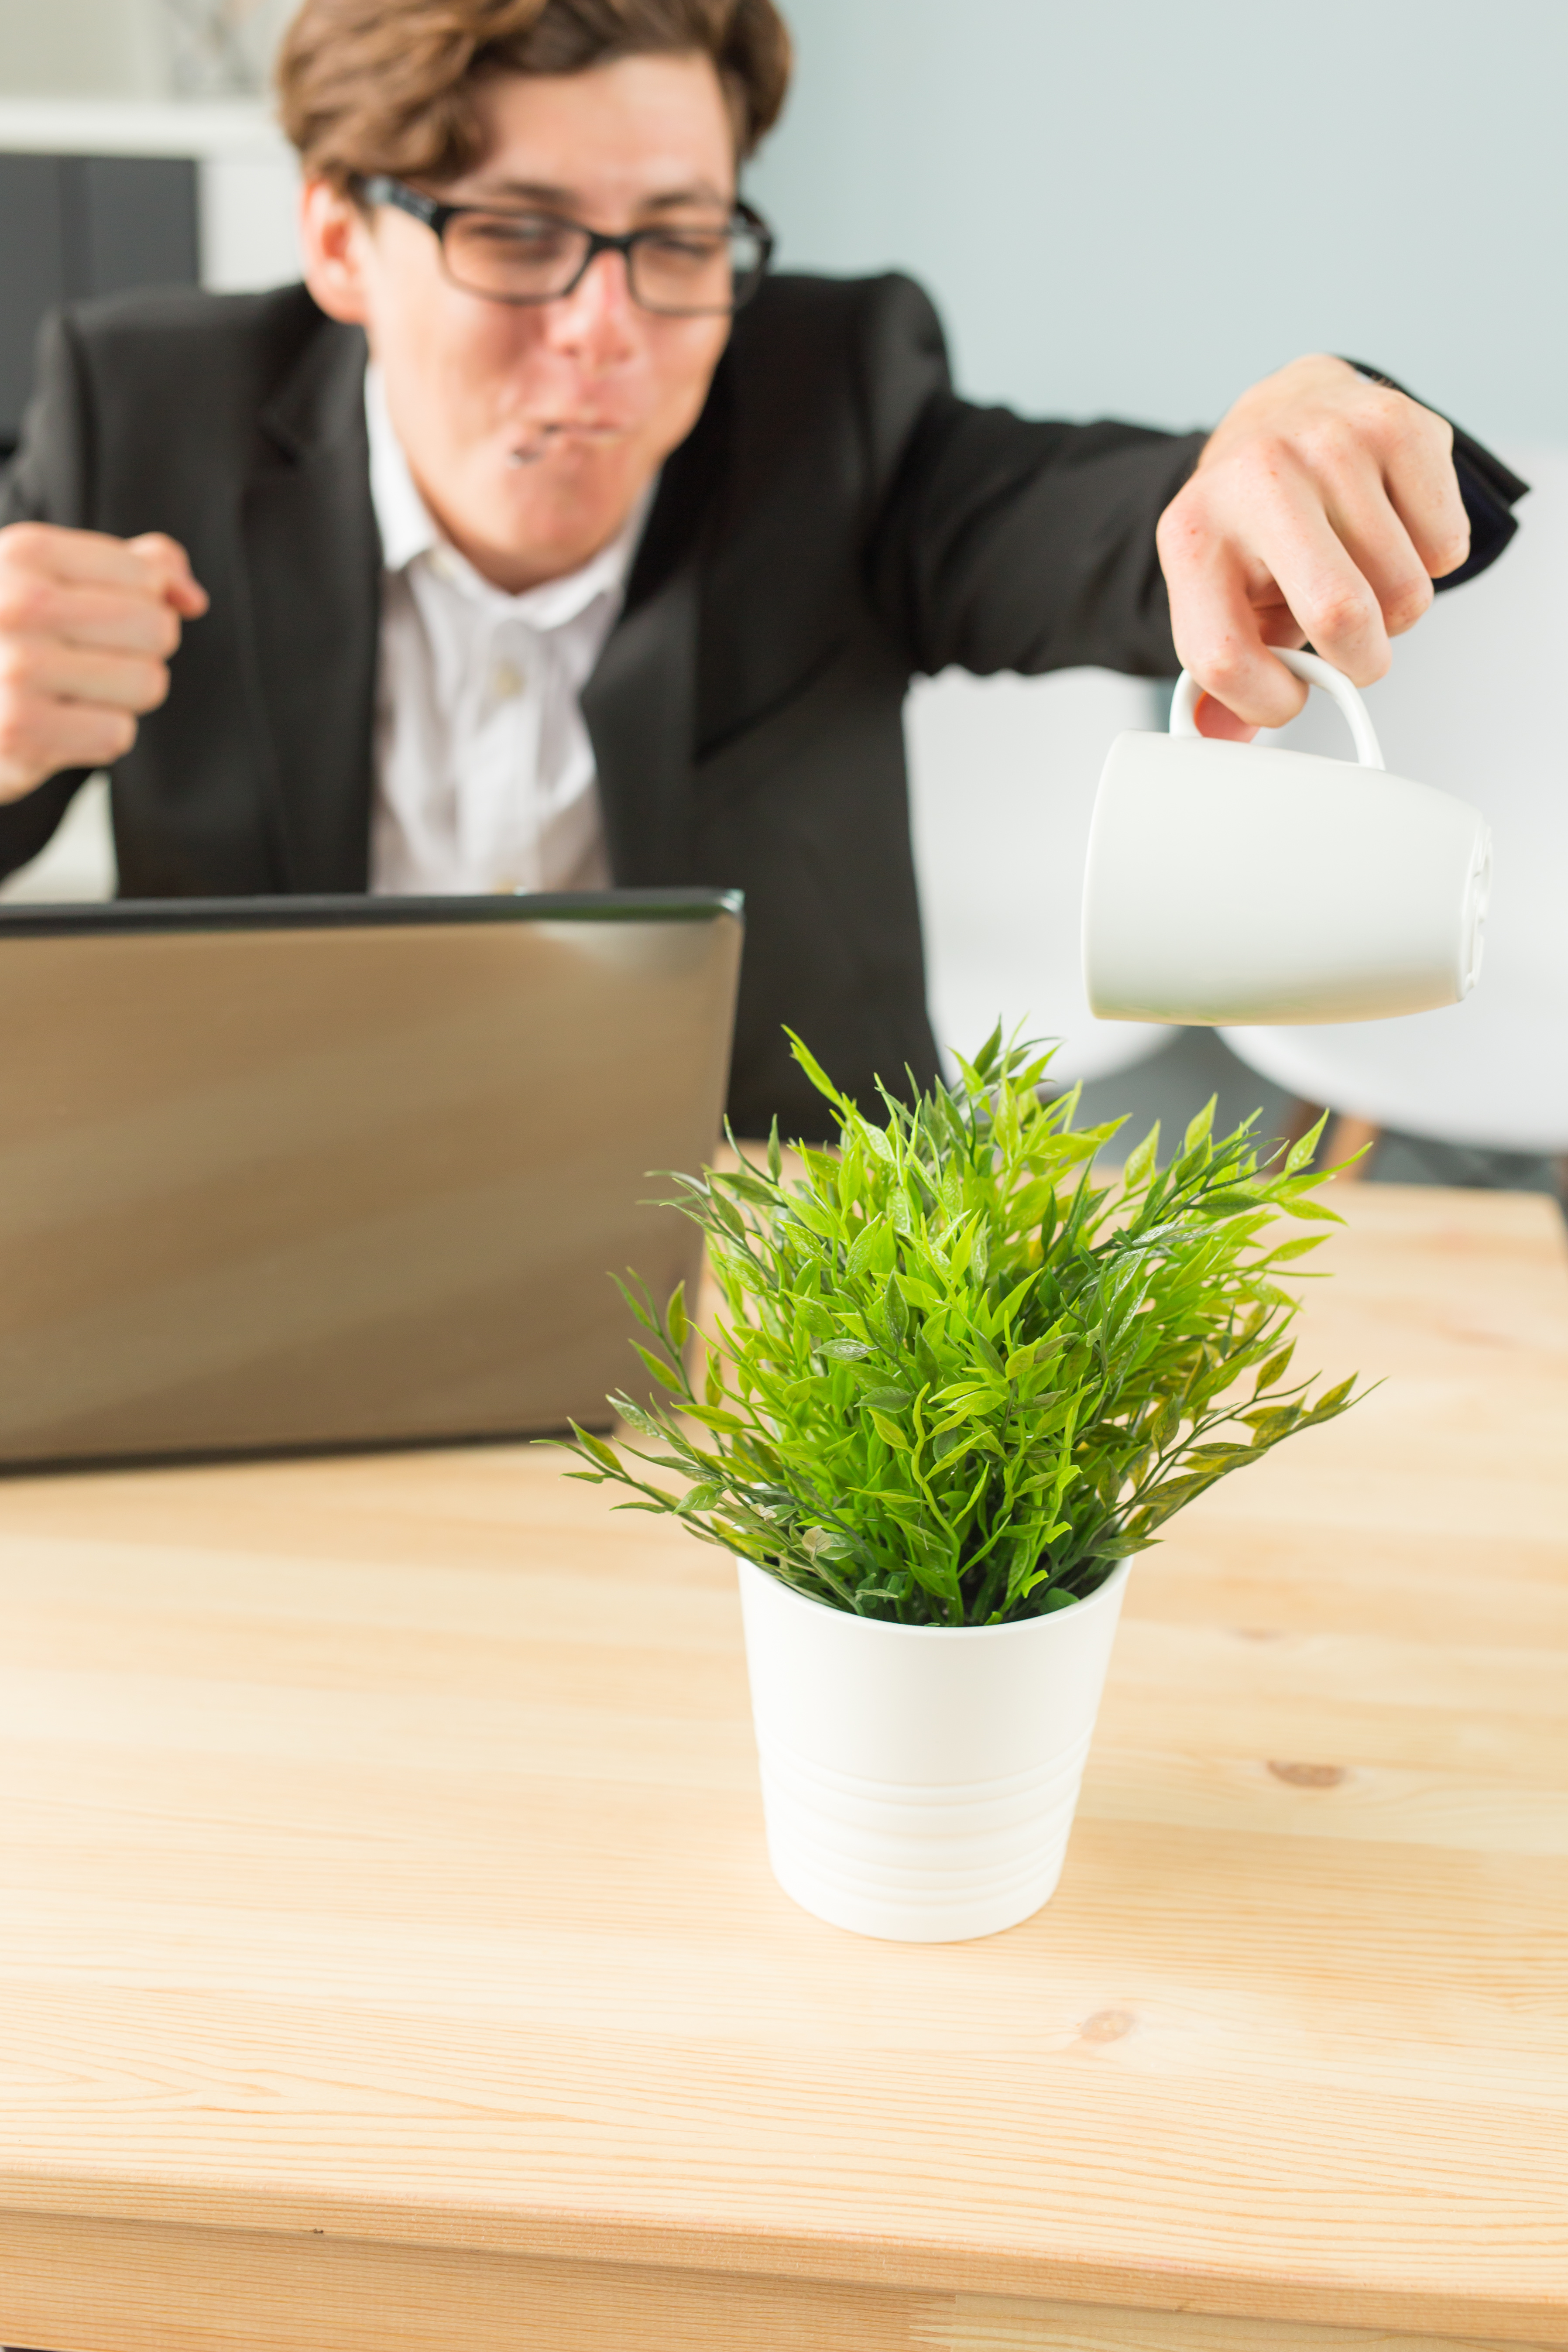 Office, humor, joke and business people concept - handsome man working in office, watering potted plant, sitting with spoon in his hands and smiling.